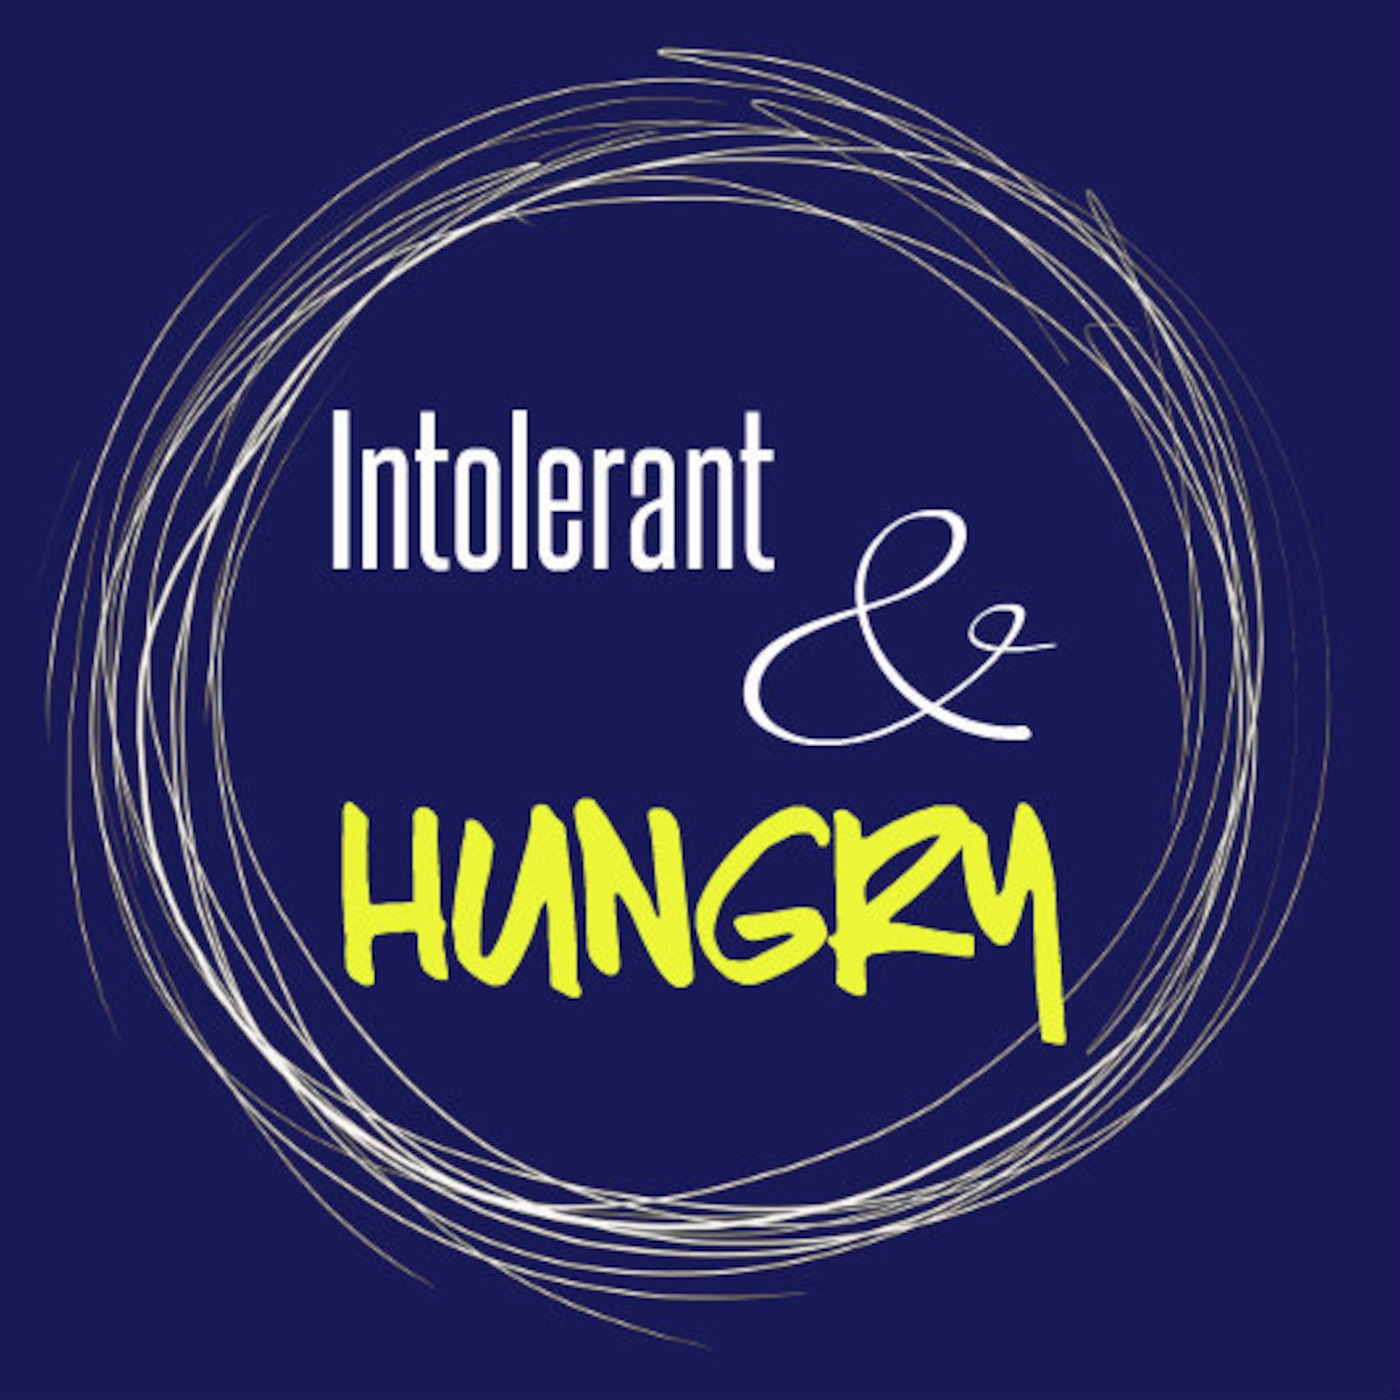 Intolerant and Hungry